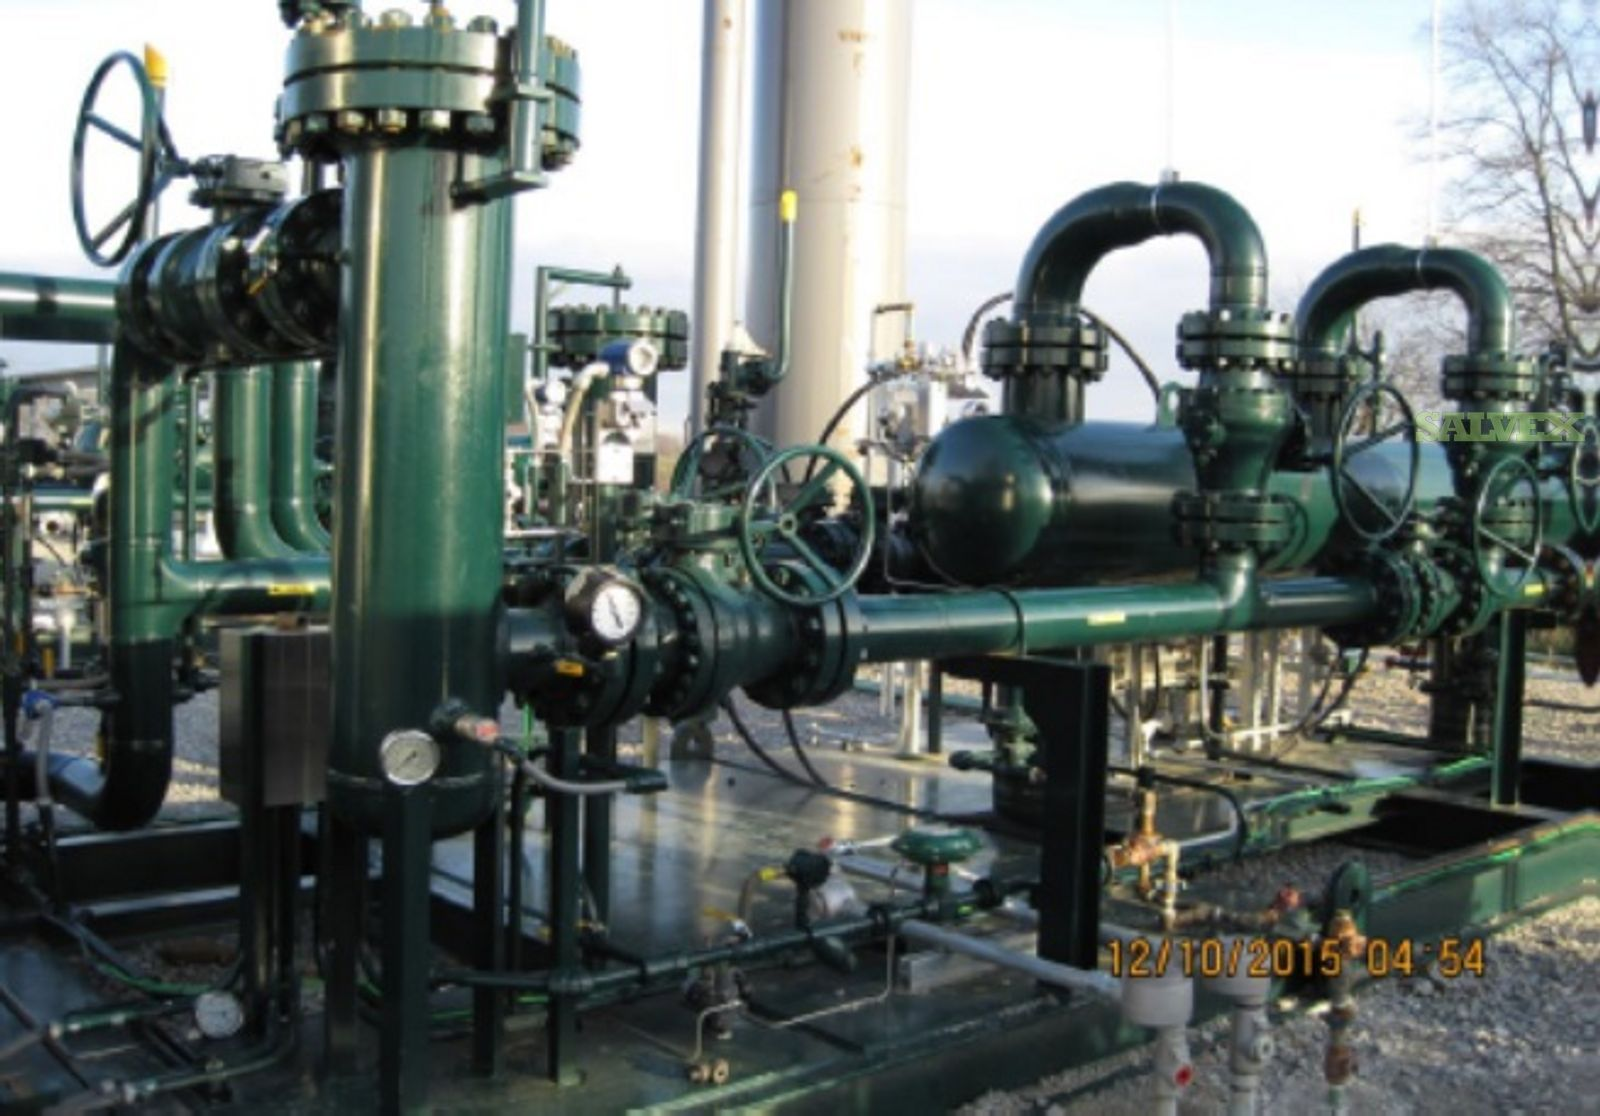 Horizontal and Vertical Separators & Pressure Swing Absorption Unit (PSA's with Filter Skids)